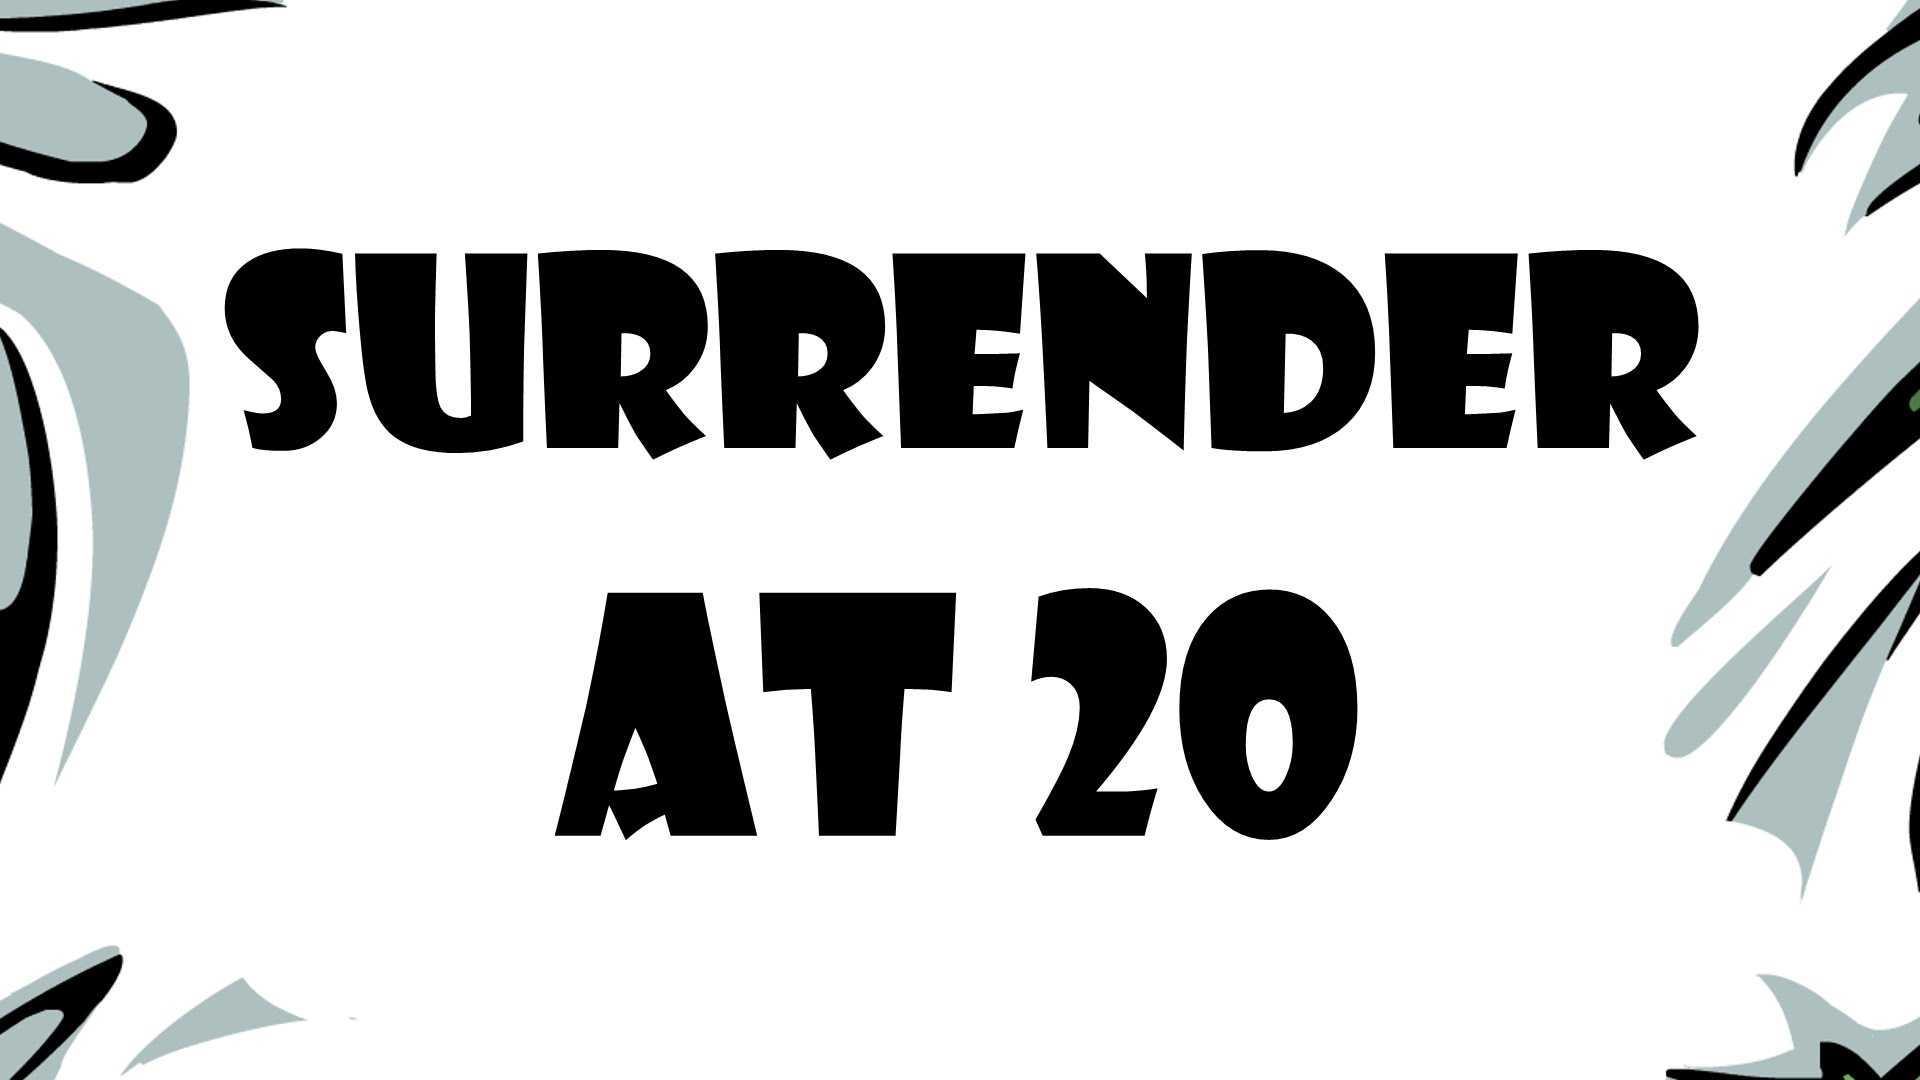 Surrender At 20 Czy Warto How2play Rizin ff 20 featured a trio of title fights, with japanese contender — and the man who stunned kyoji horiguchi inside a round at rizin ff 18 — kai asakura, taking on the explosive manel kape for the. surrender at 20 czy warto how2play